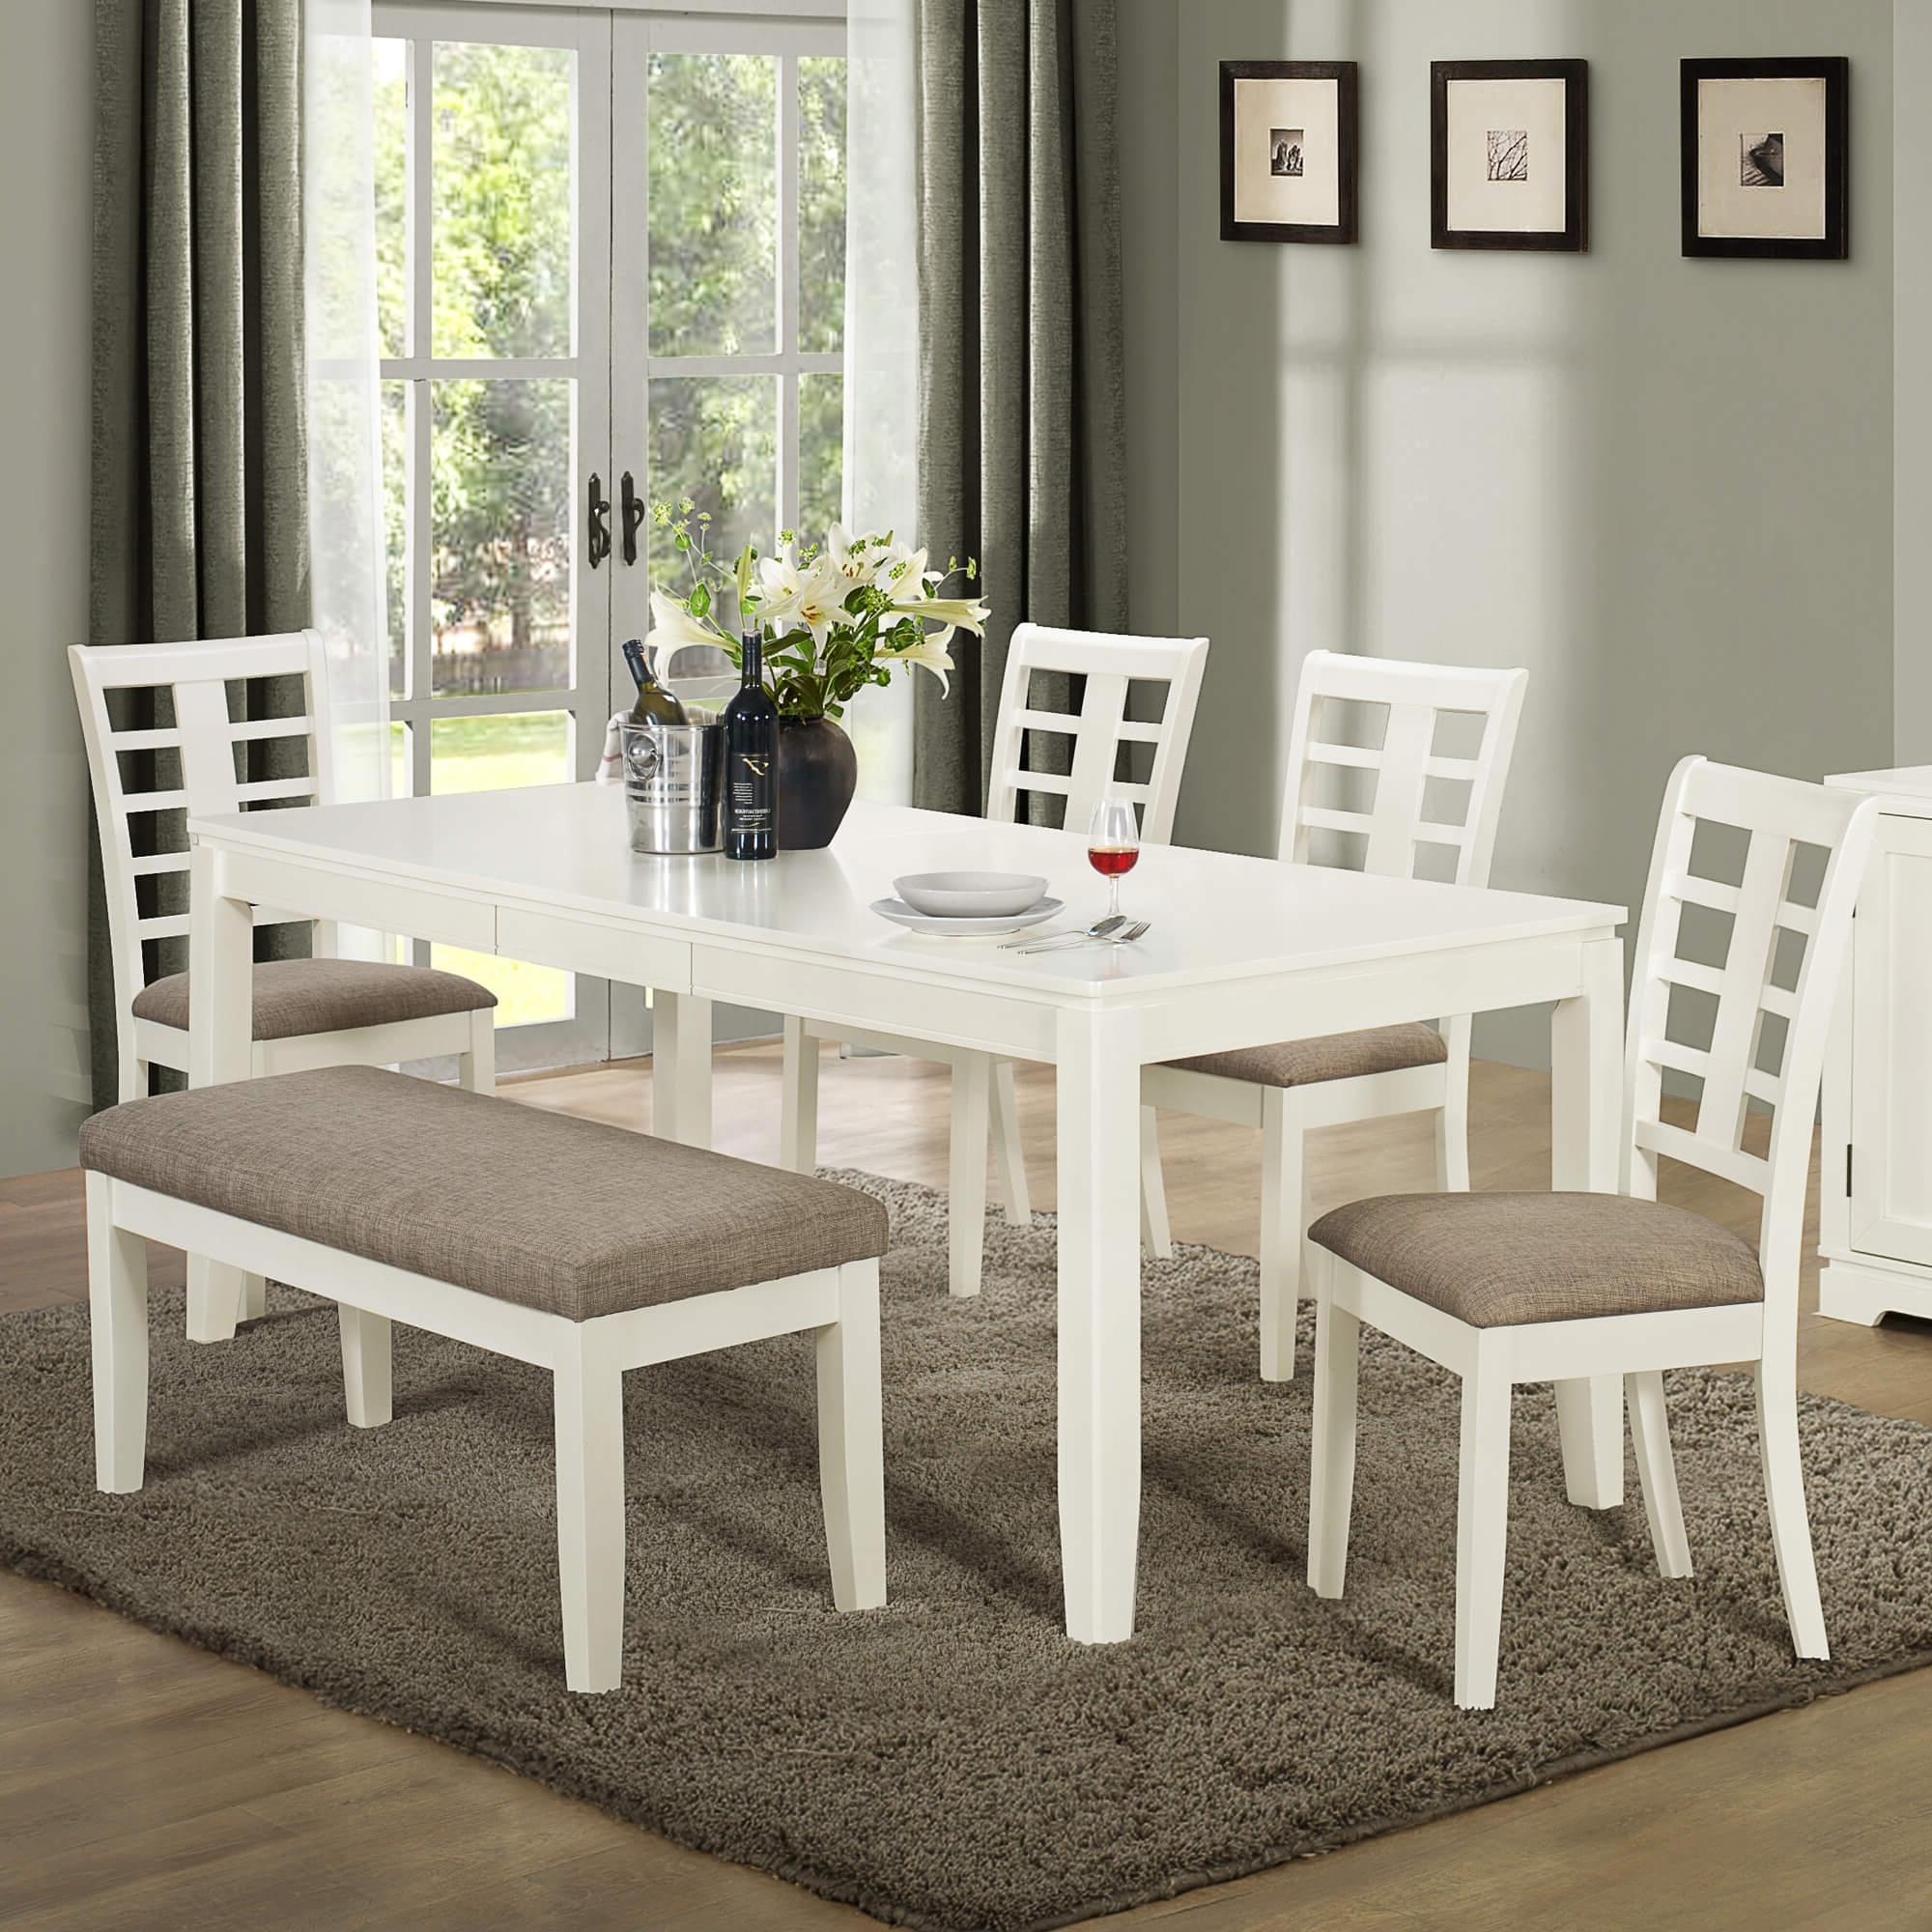 26 Dining Room Sets (Big And Small) With Bench Seating (2018) With Well Liked Craftsman 5 Piece Round Dining Sets With Uph Side Chairs (Gallery 14 of 25)